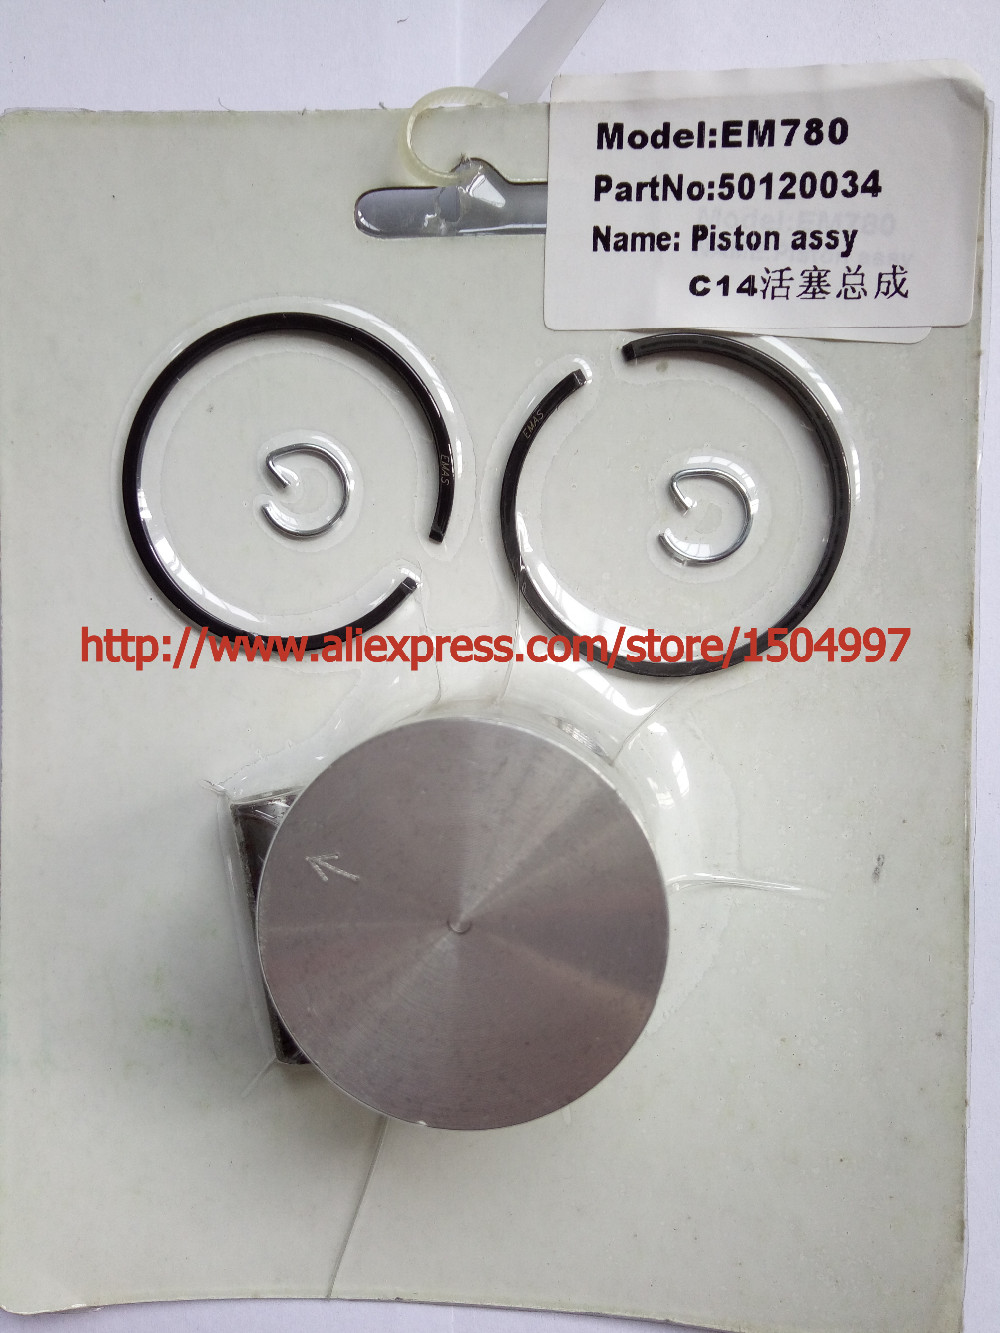 Piston Kit with Pin Rings Clips assy Set kit for fit Piston Kit fit OLEO-MAC 941 C/CX, BC420 T, GS410 CX, Sparta 42, 44 (40mm) 38mm size 10mm piston kit and crankshaft made up cylider kits fit ms170 ms180